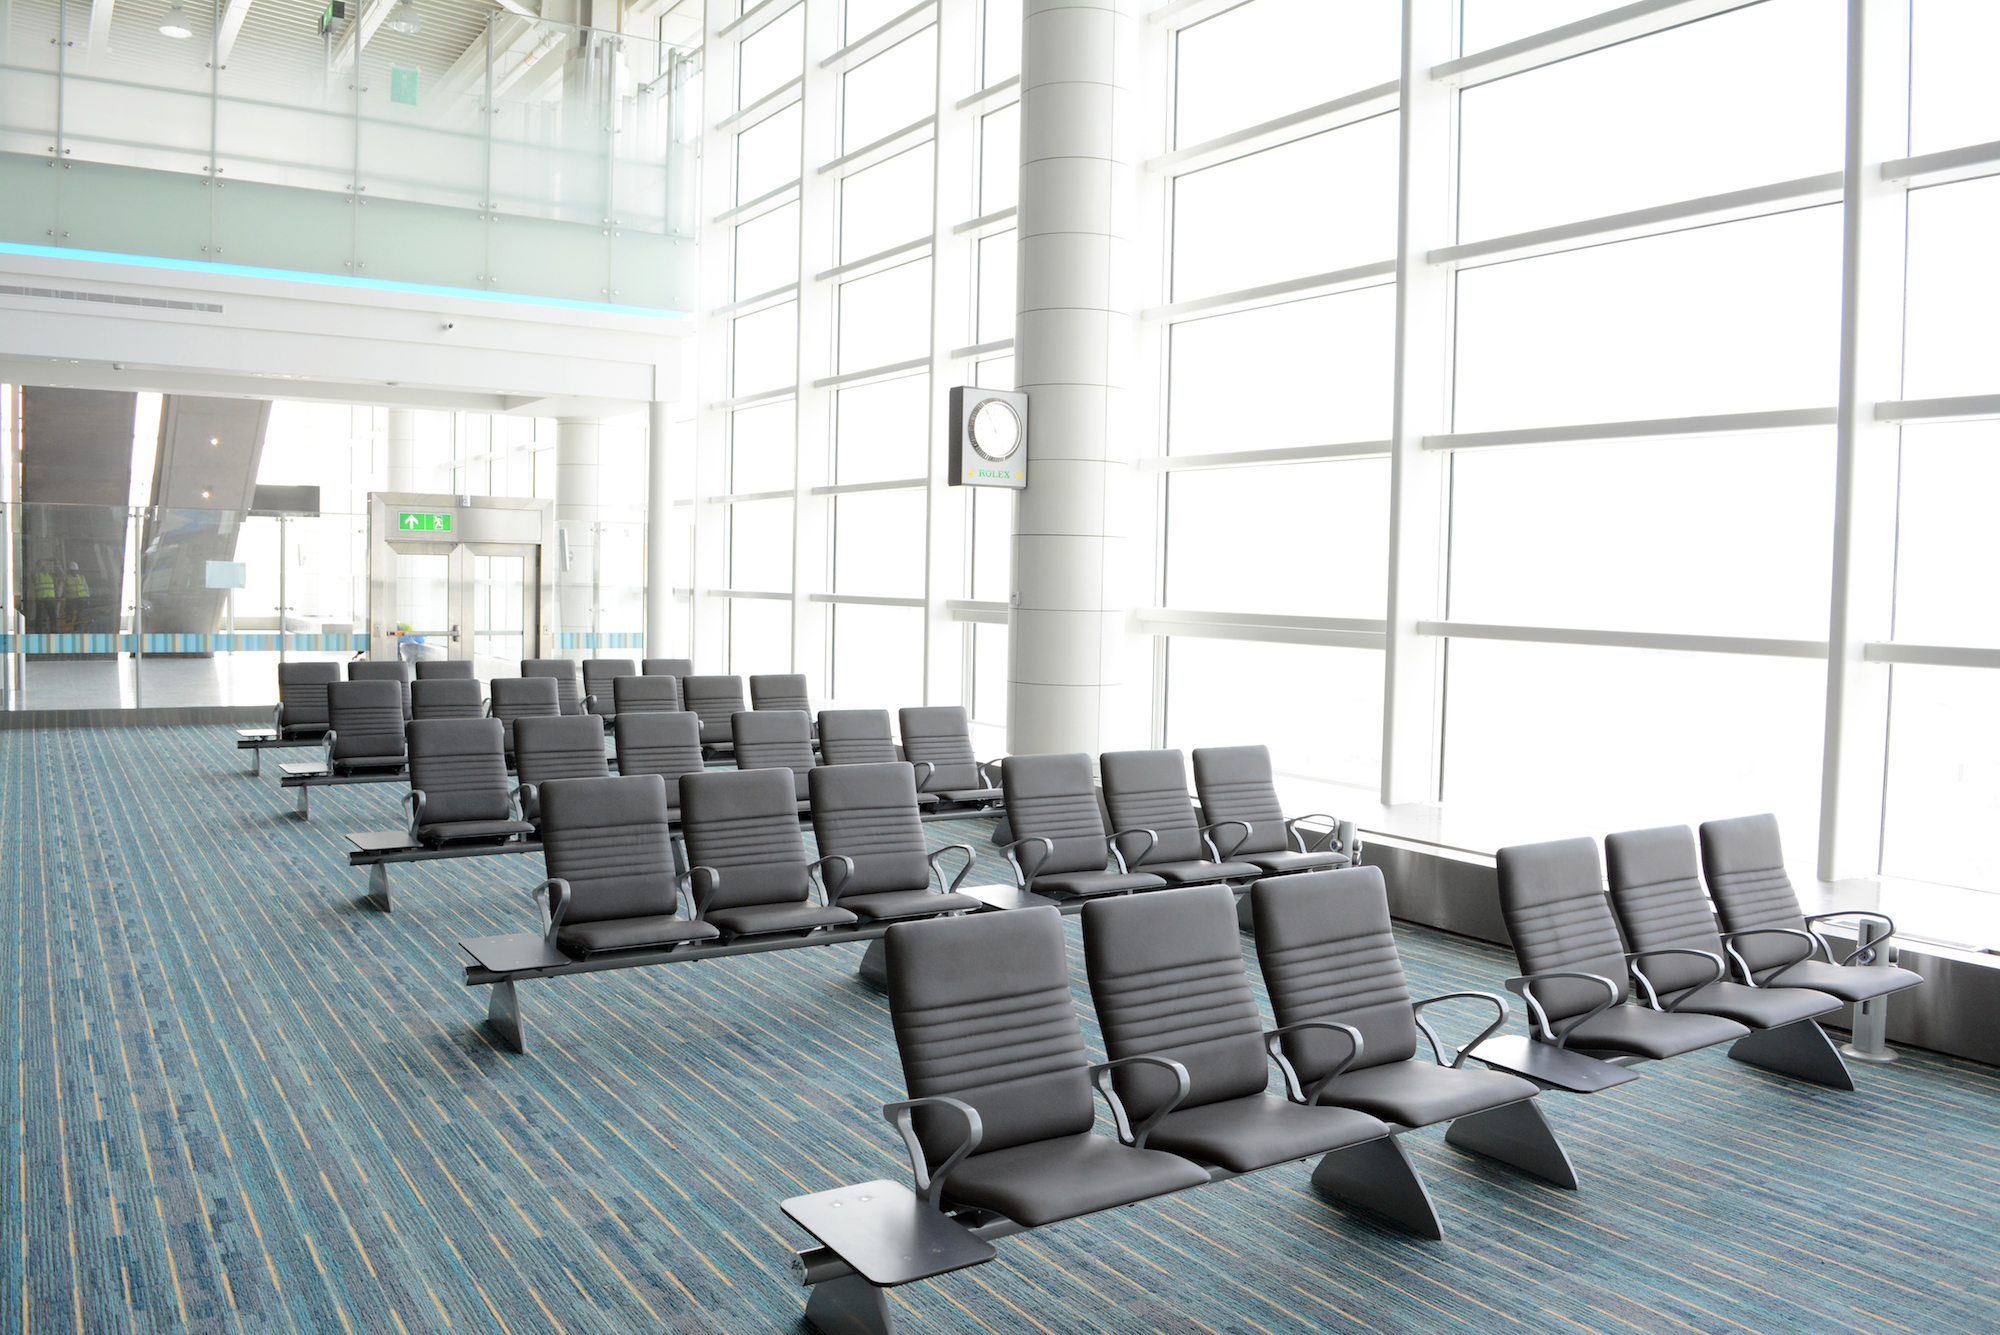 Zoeftig  Airport Terminal Seating Design and Manufacturer